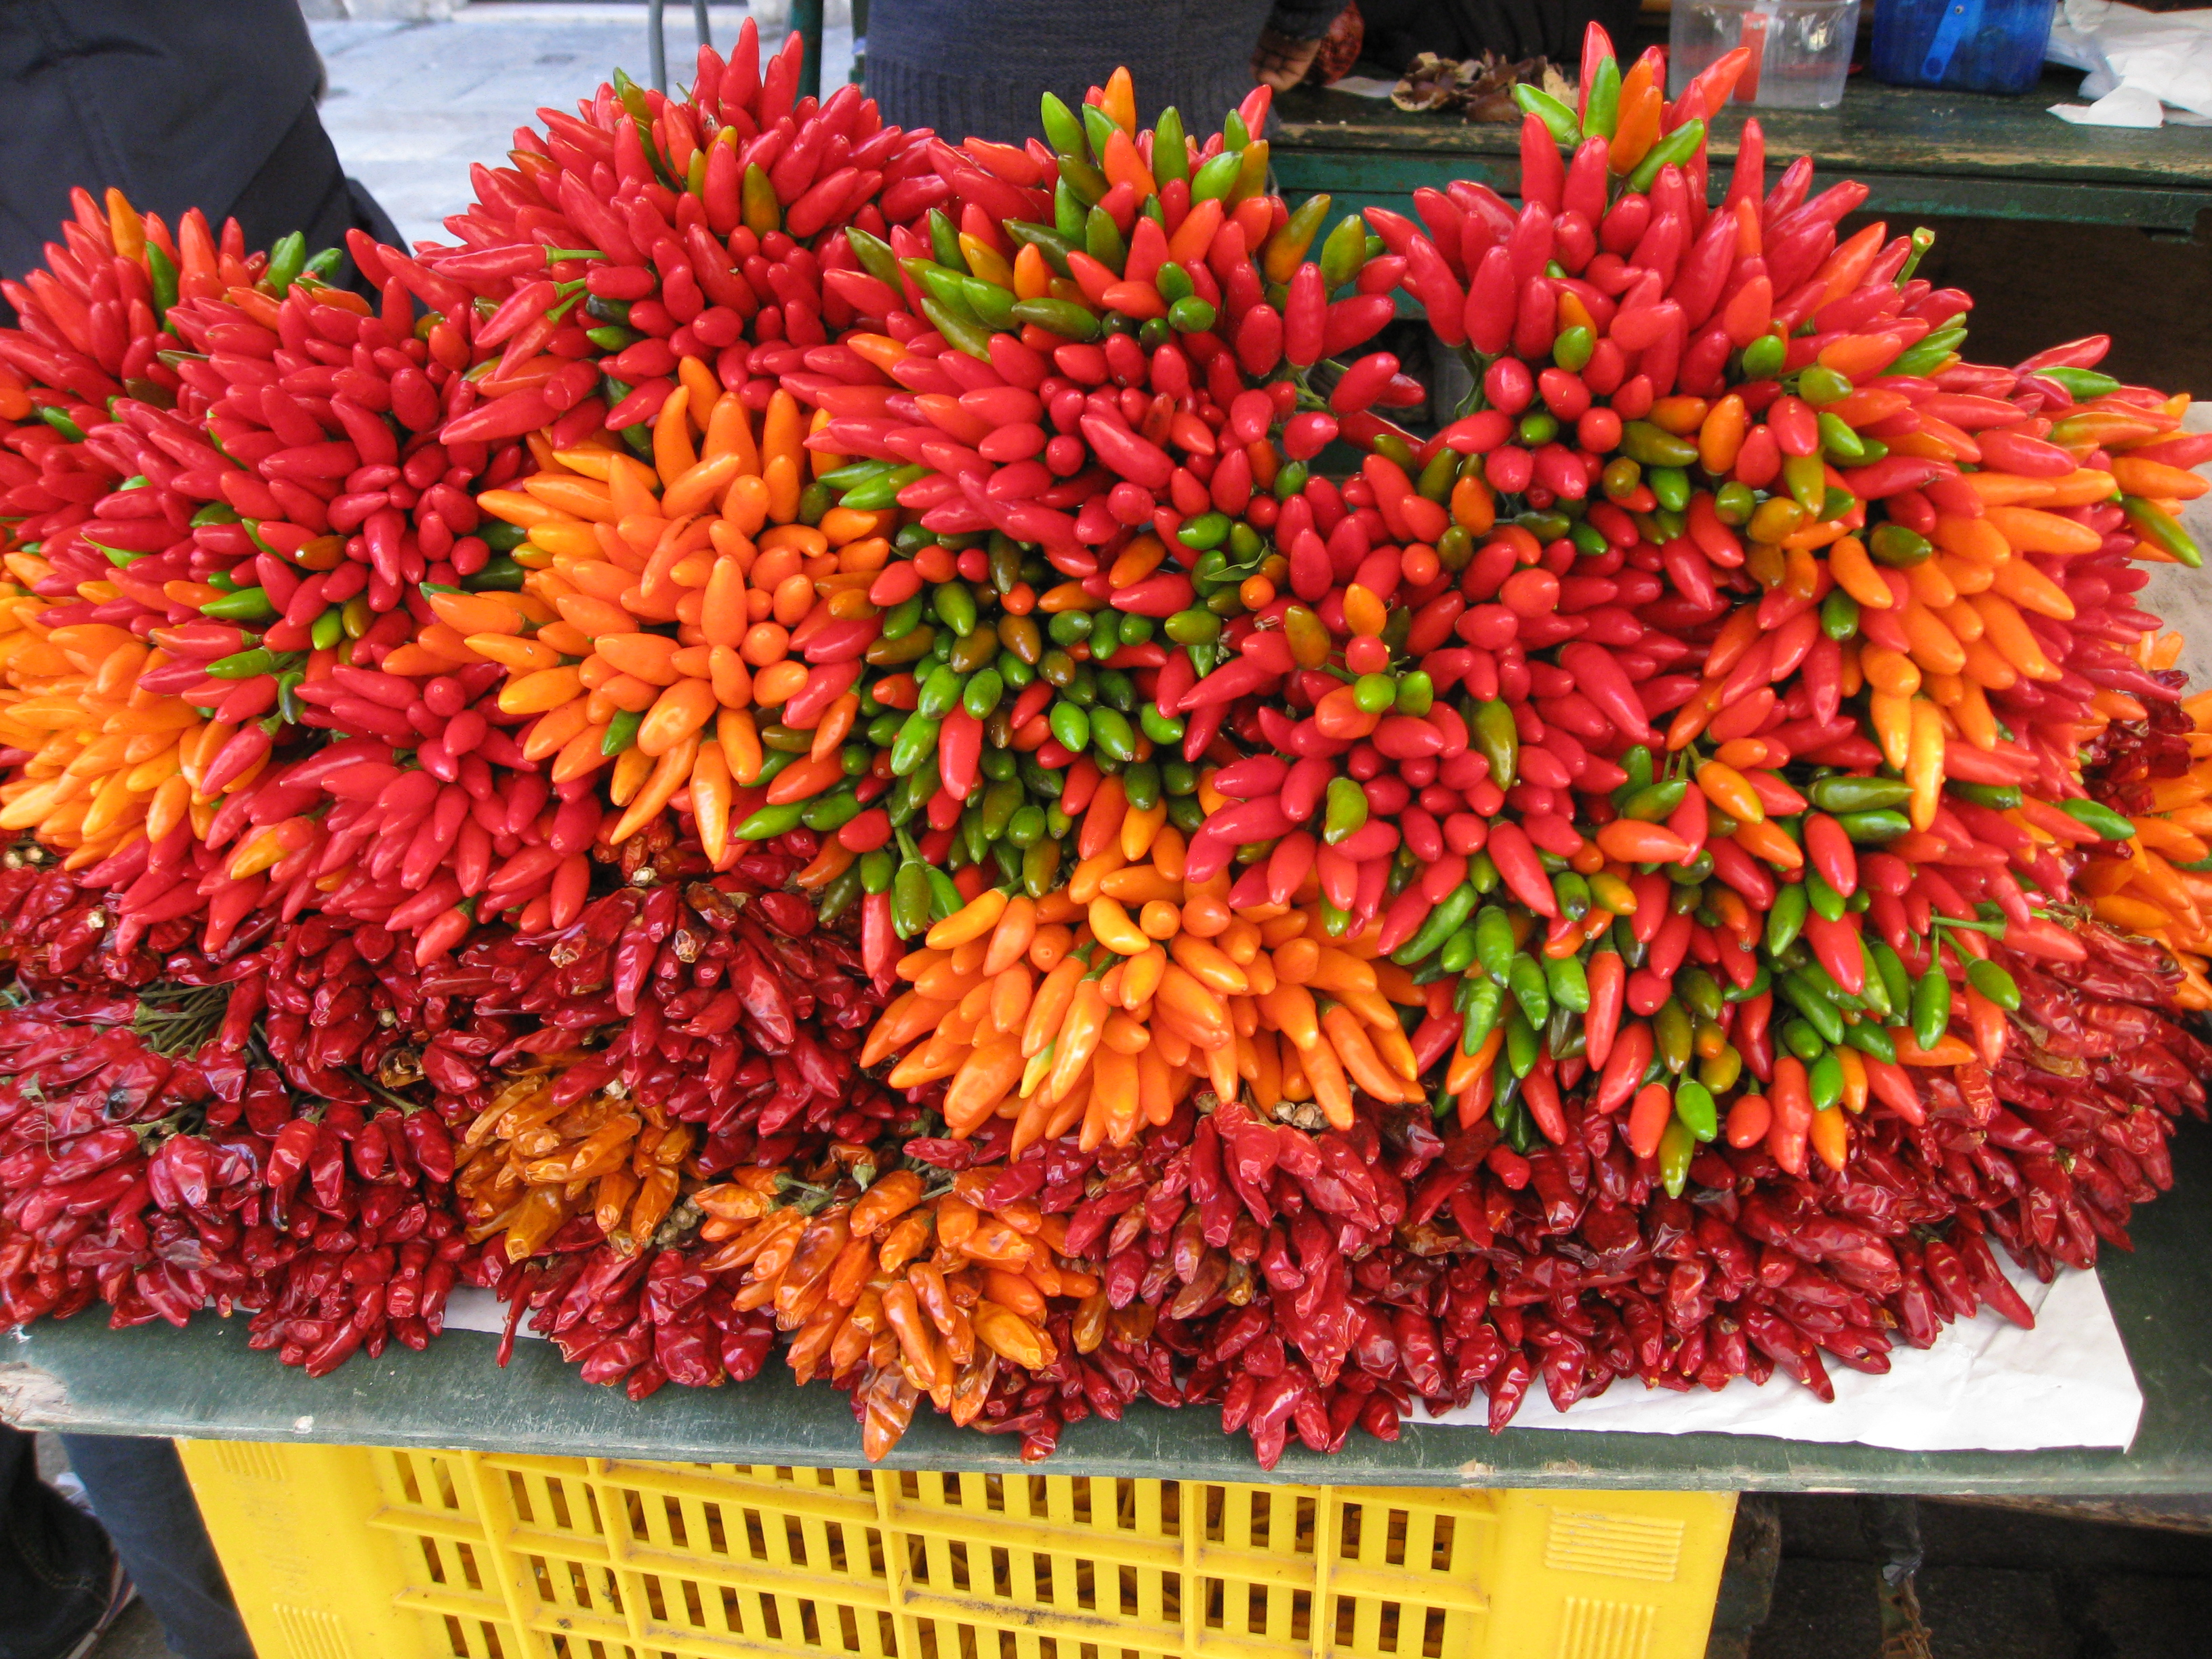 Colorful peppers sold by the bunch